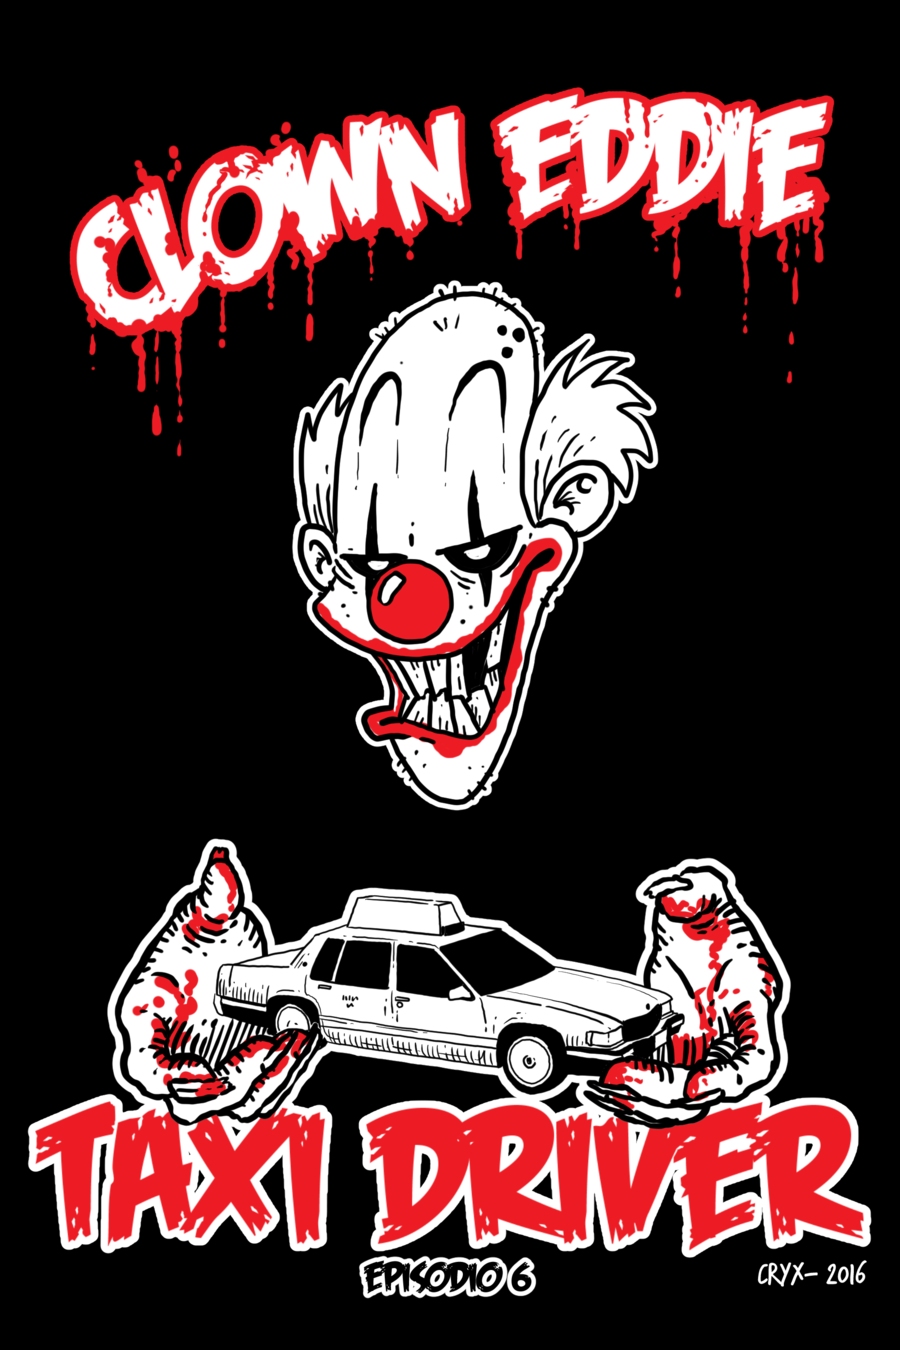 Clown Eddie: Taxi driver